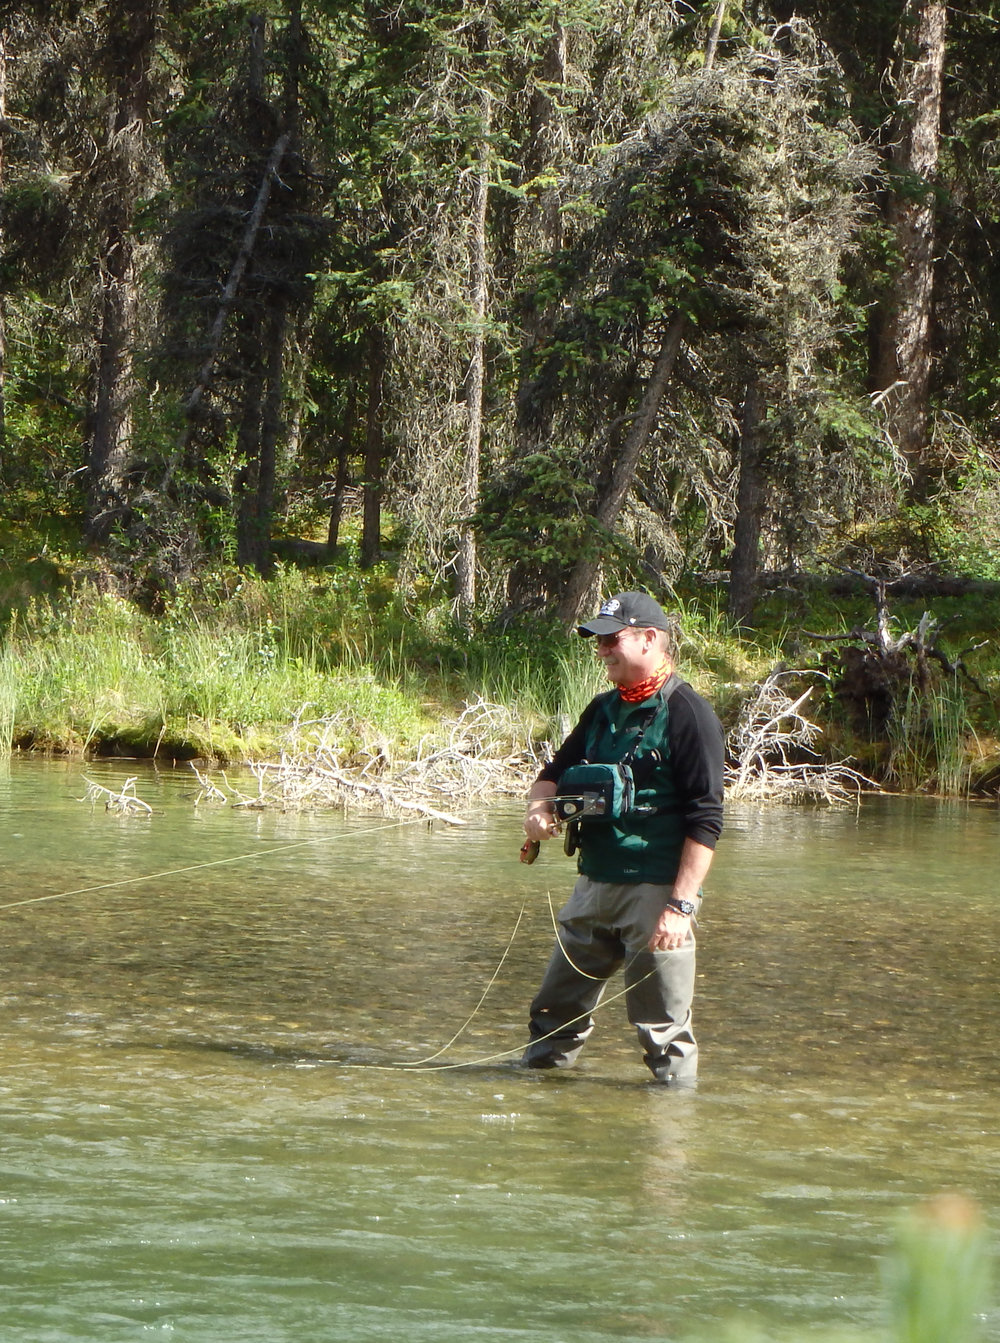 Enjoying the moment, fly fishing a remote mountain stream